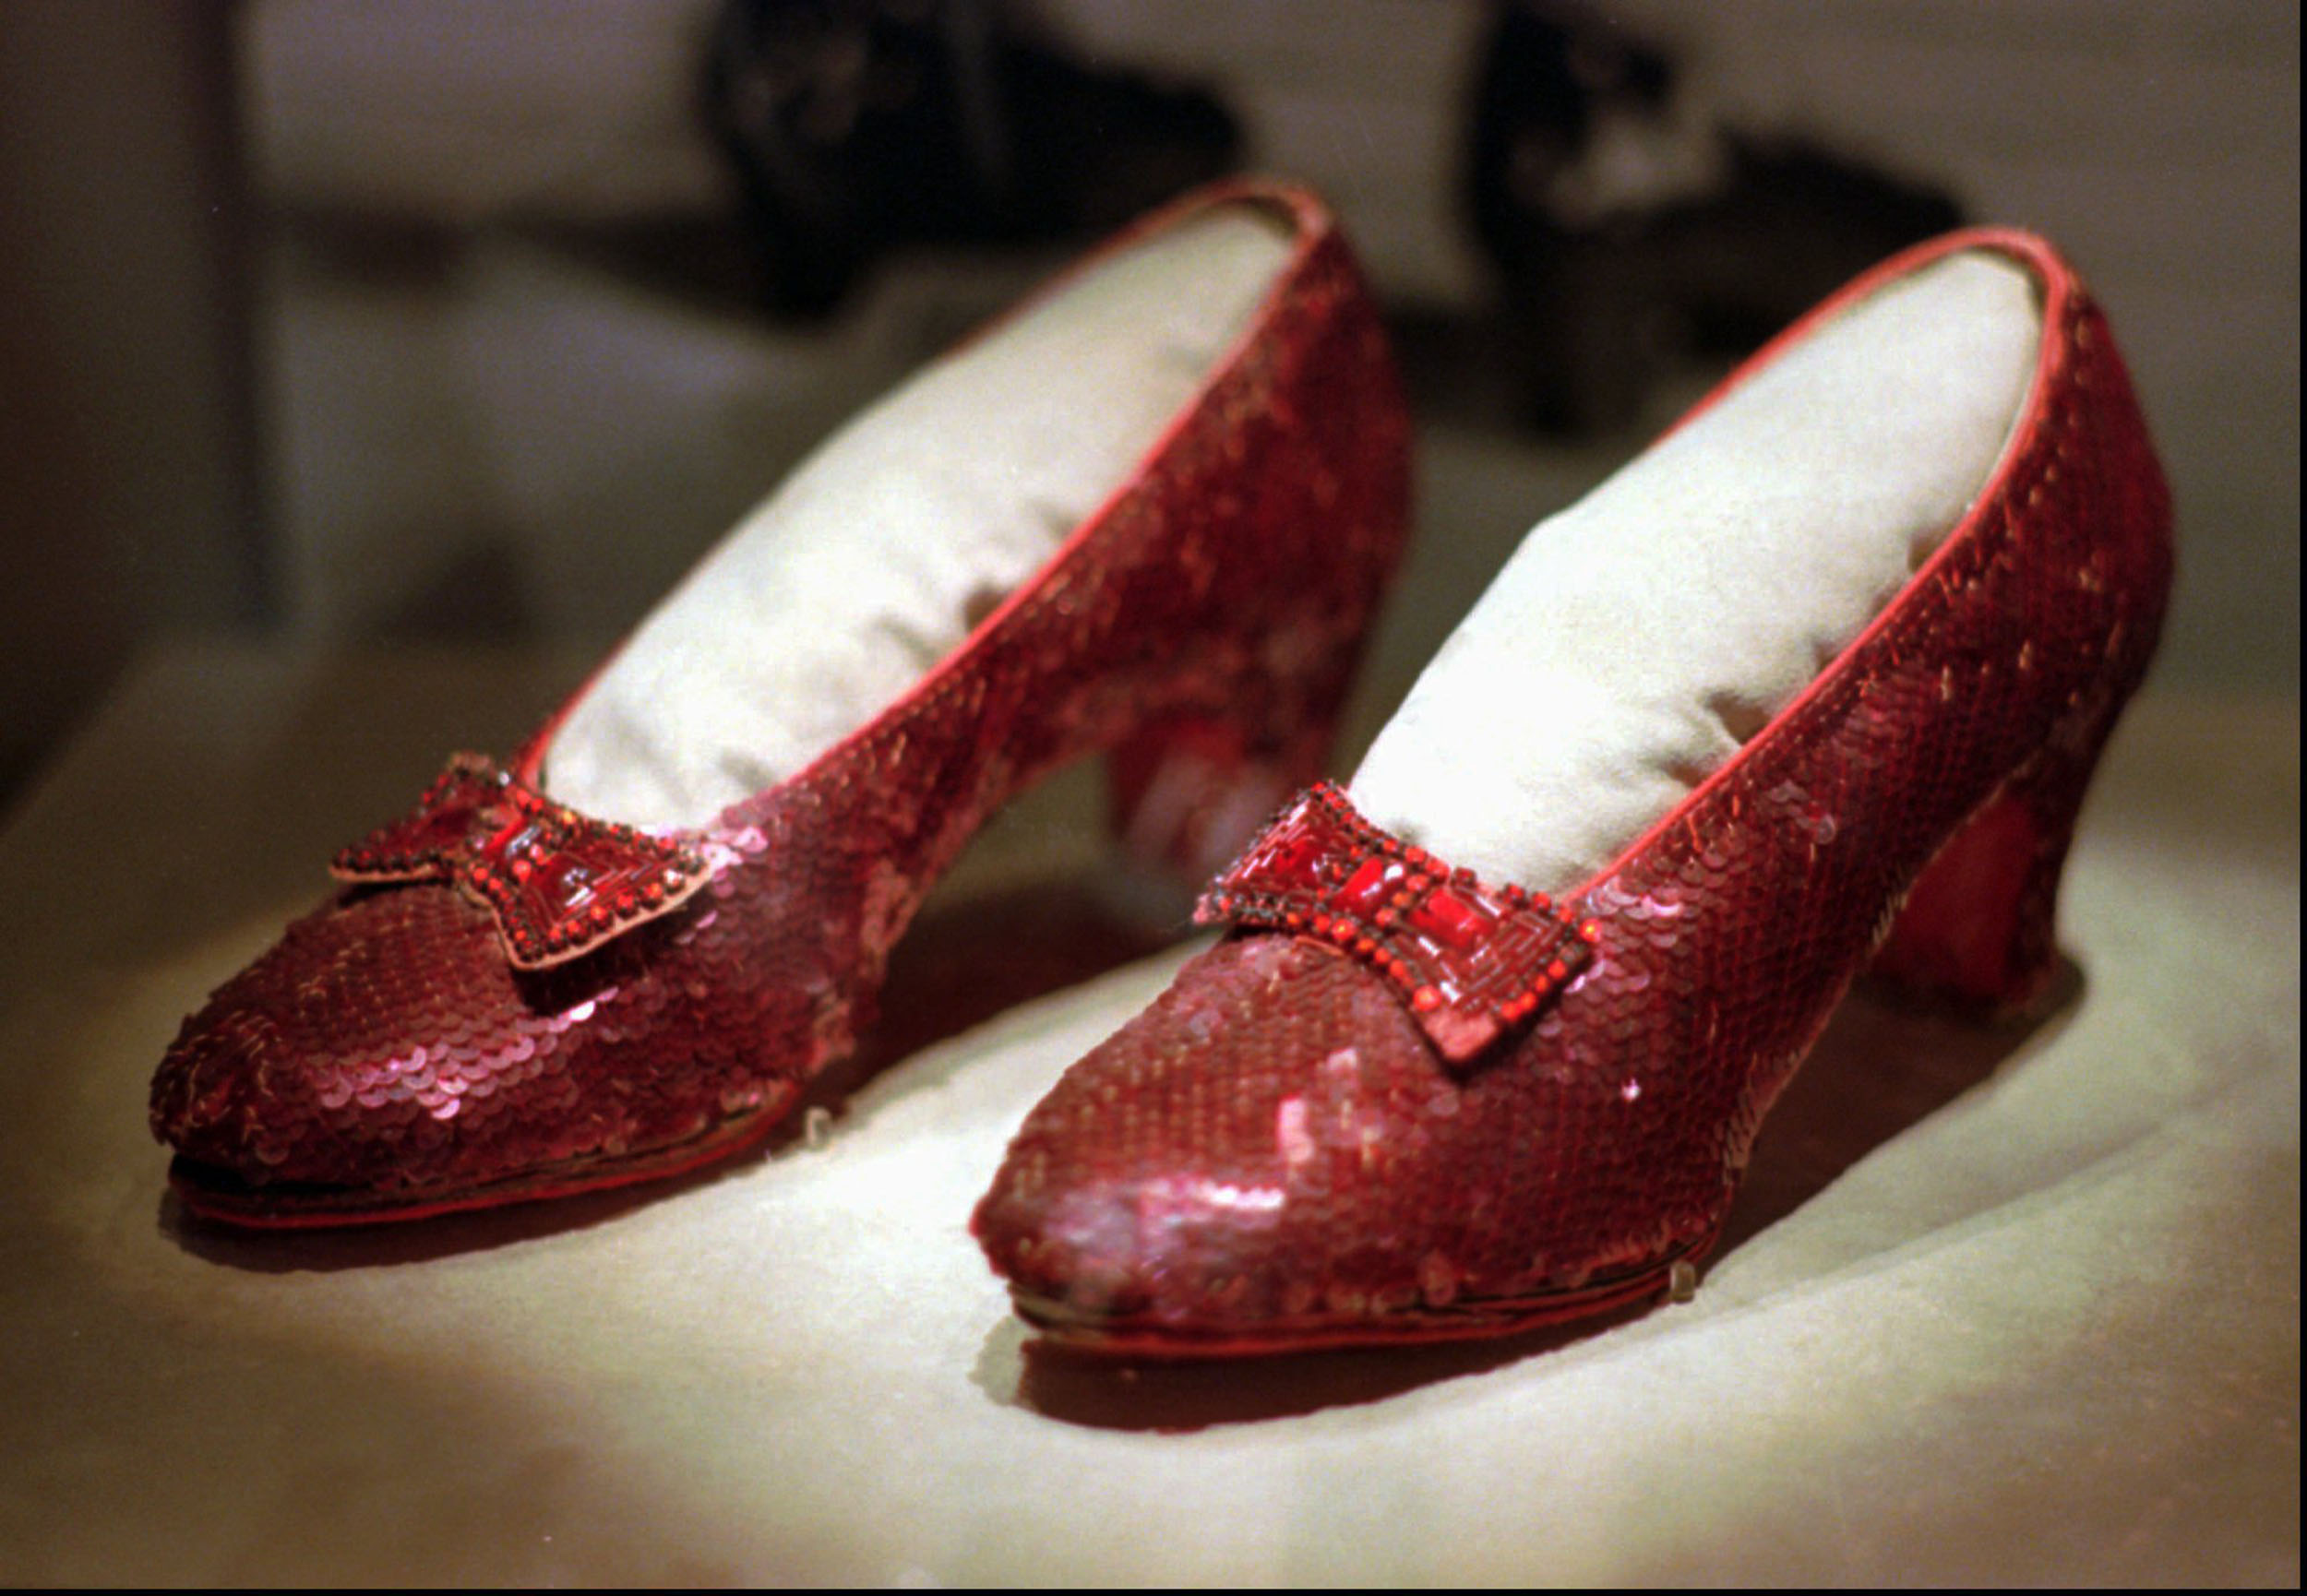 Dorothy's stolen ruby slippers from 'The Wizard of Oz' found by FBI after 13 years